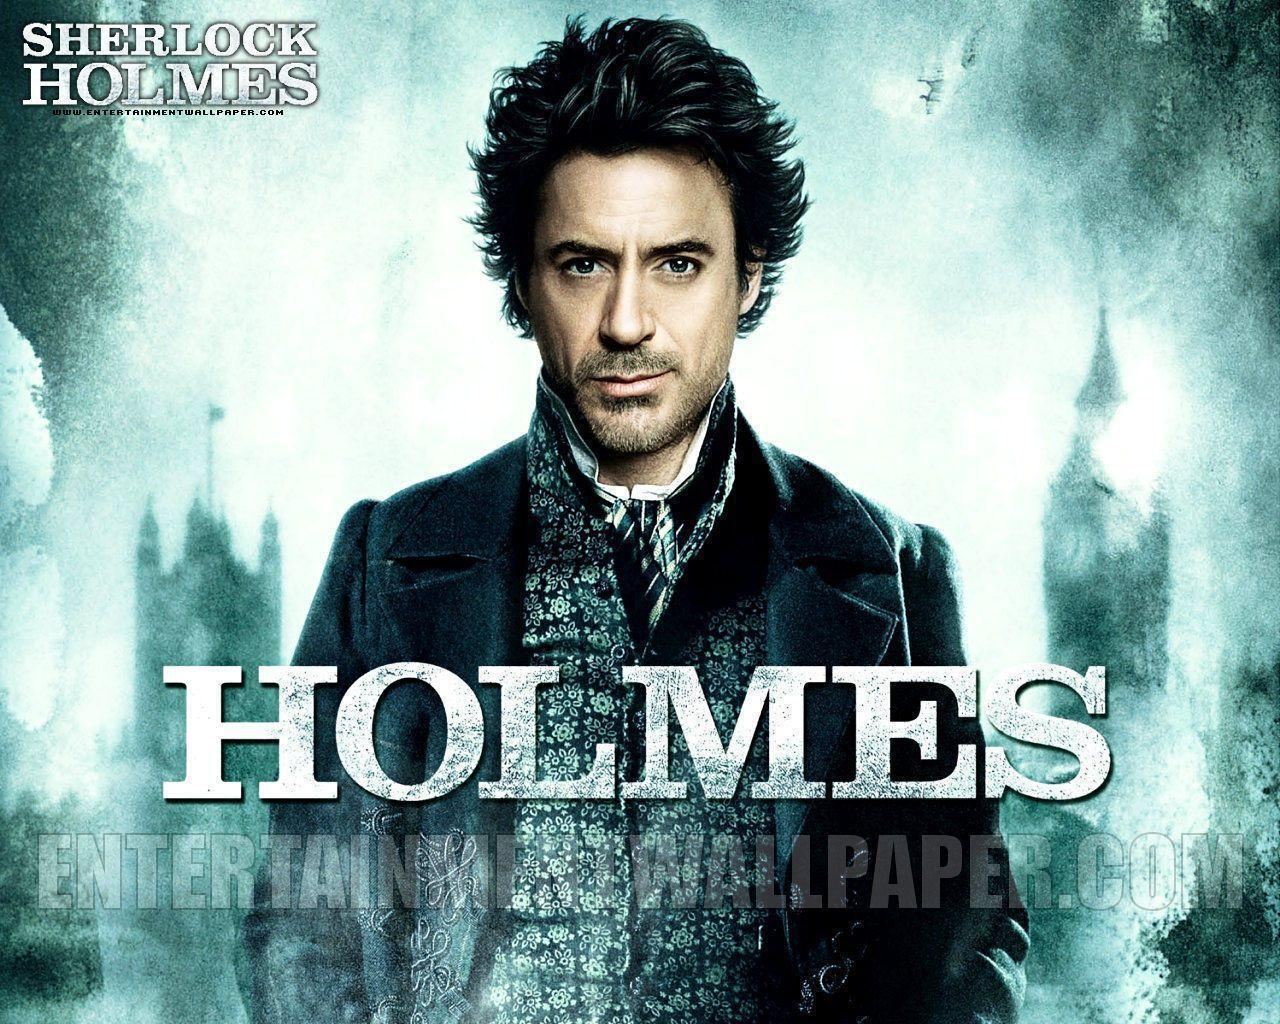 Robert Downey Jr Sherlock Holmes Wallpapers